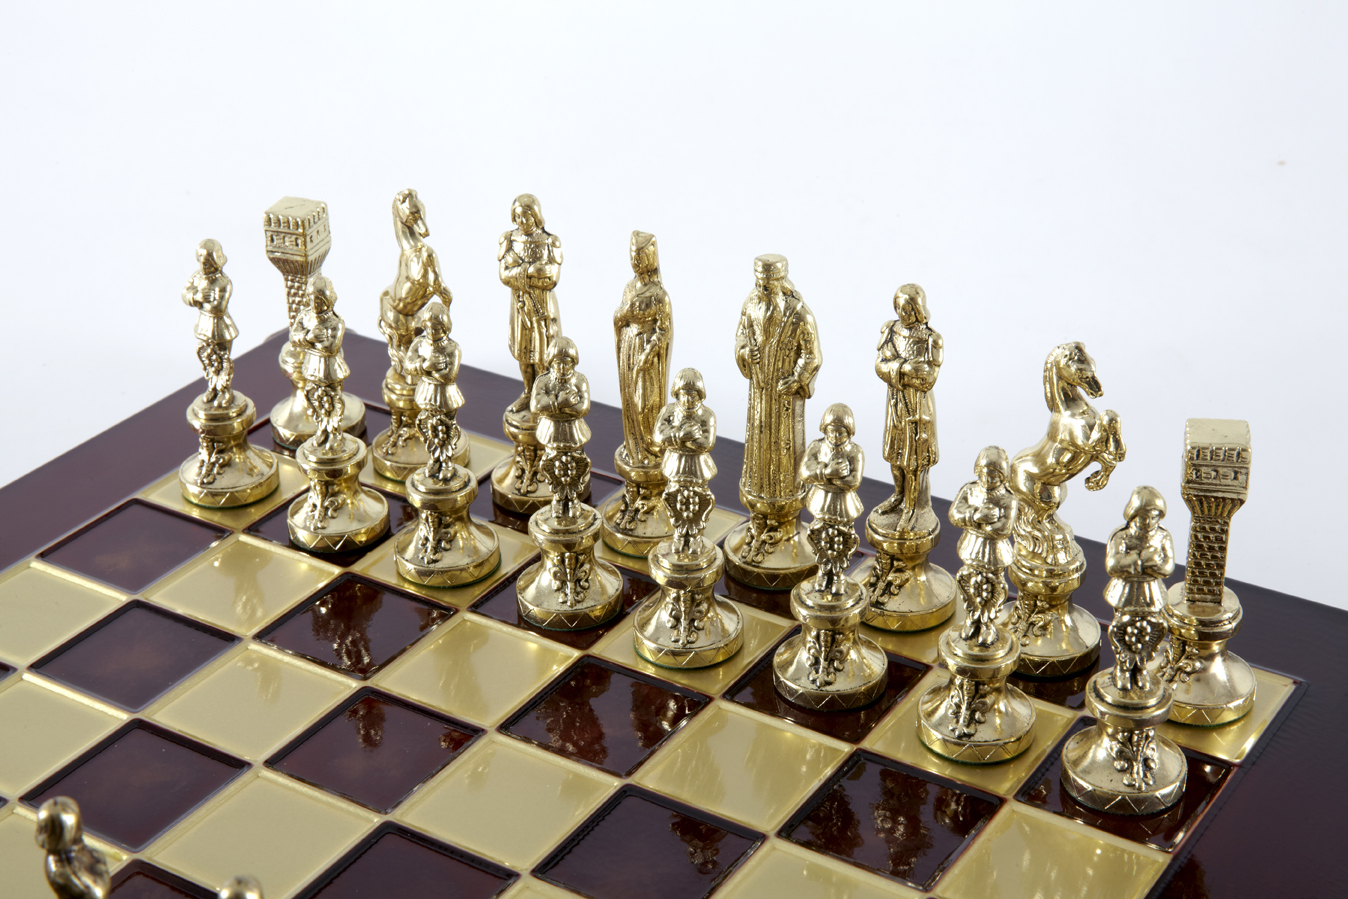 Renaissance chess set with gold-silver chessmen/Red chessboard 36 sm